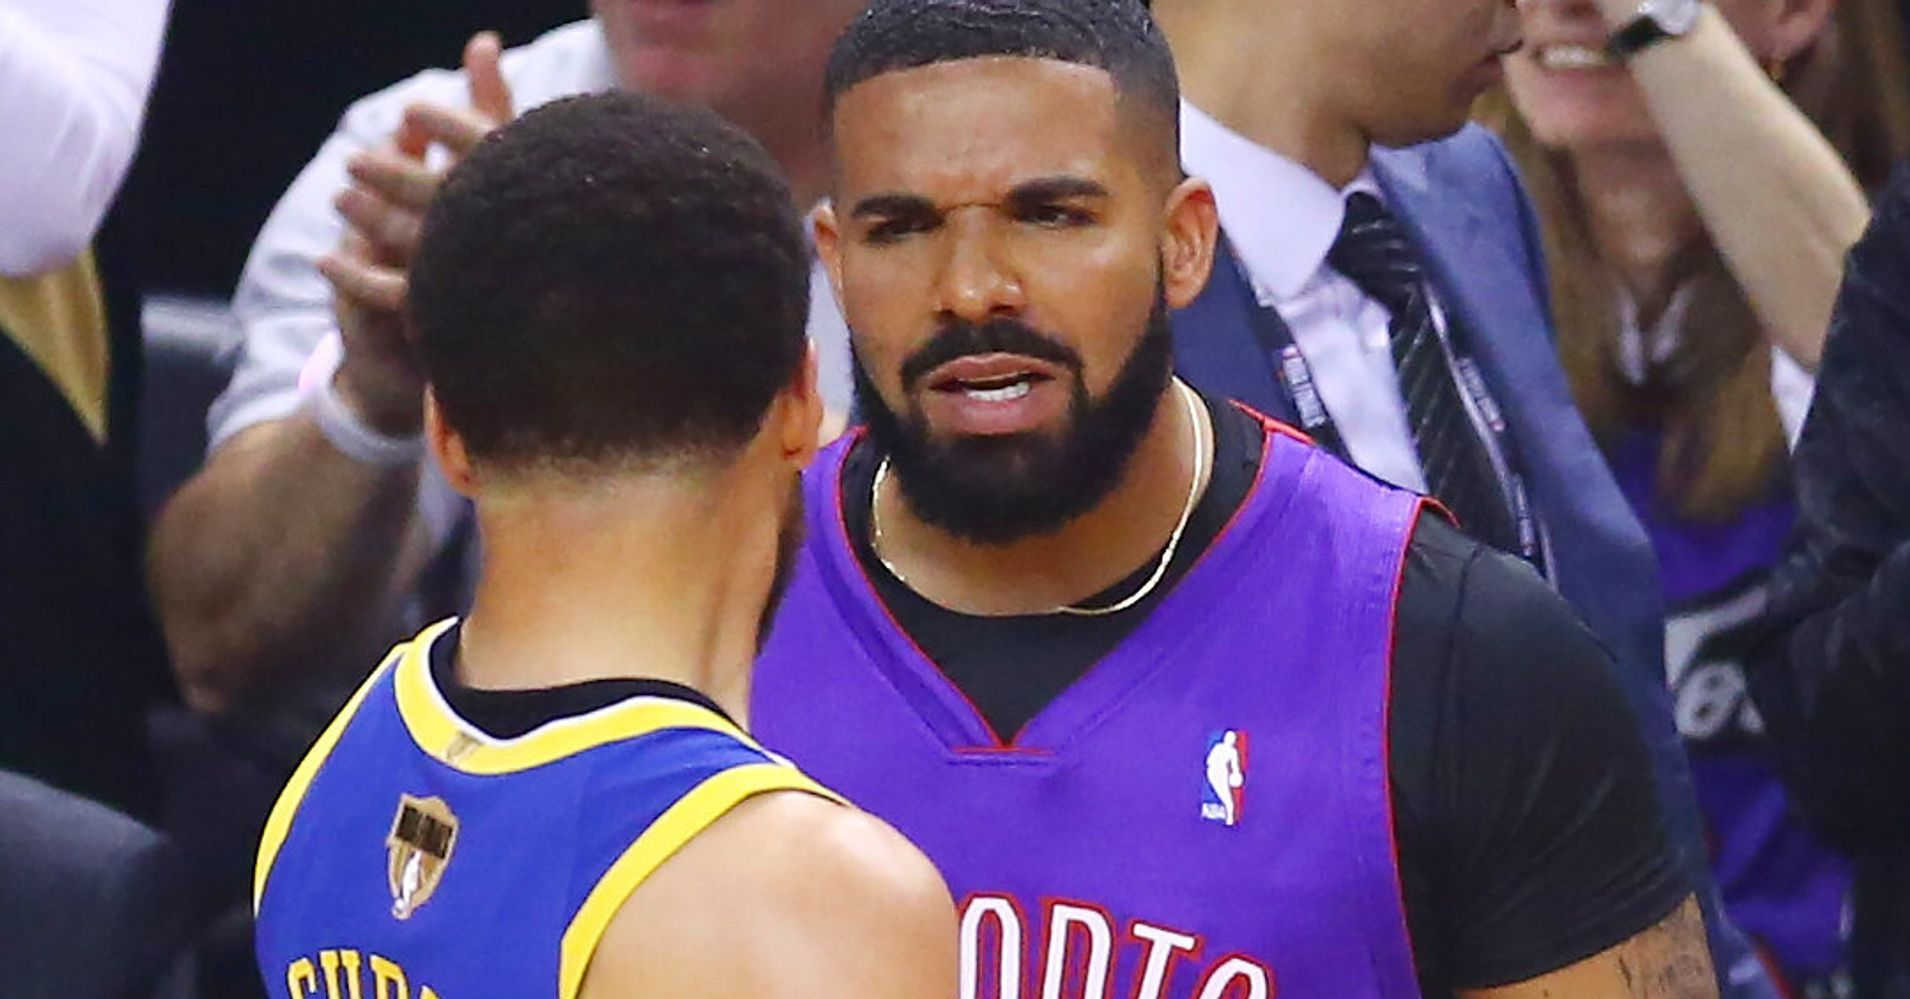 f3cbb777bc5 People Had A Lot To Say About How Drake Trolled Steph Curry At The NBA  Finals | HuffPost